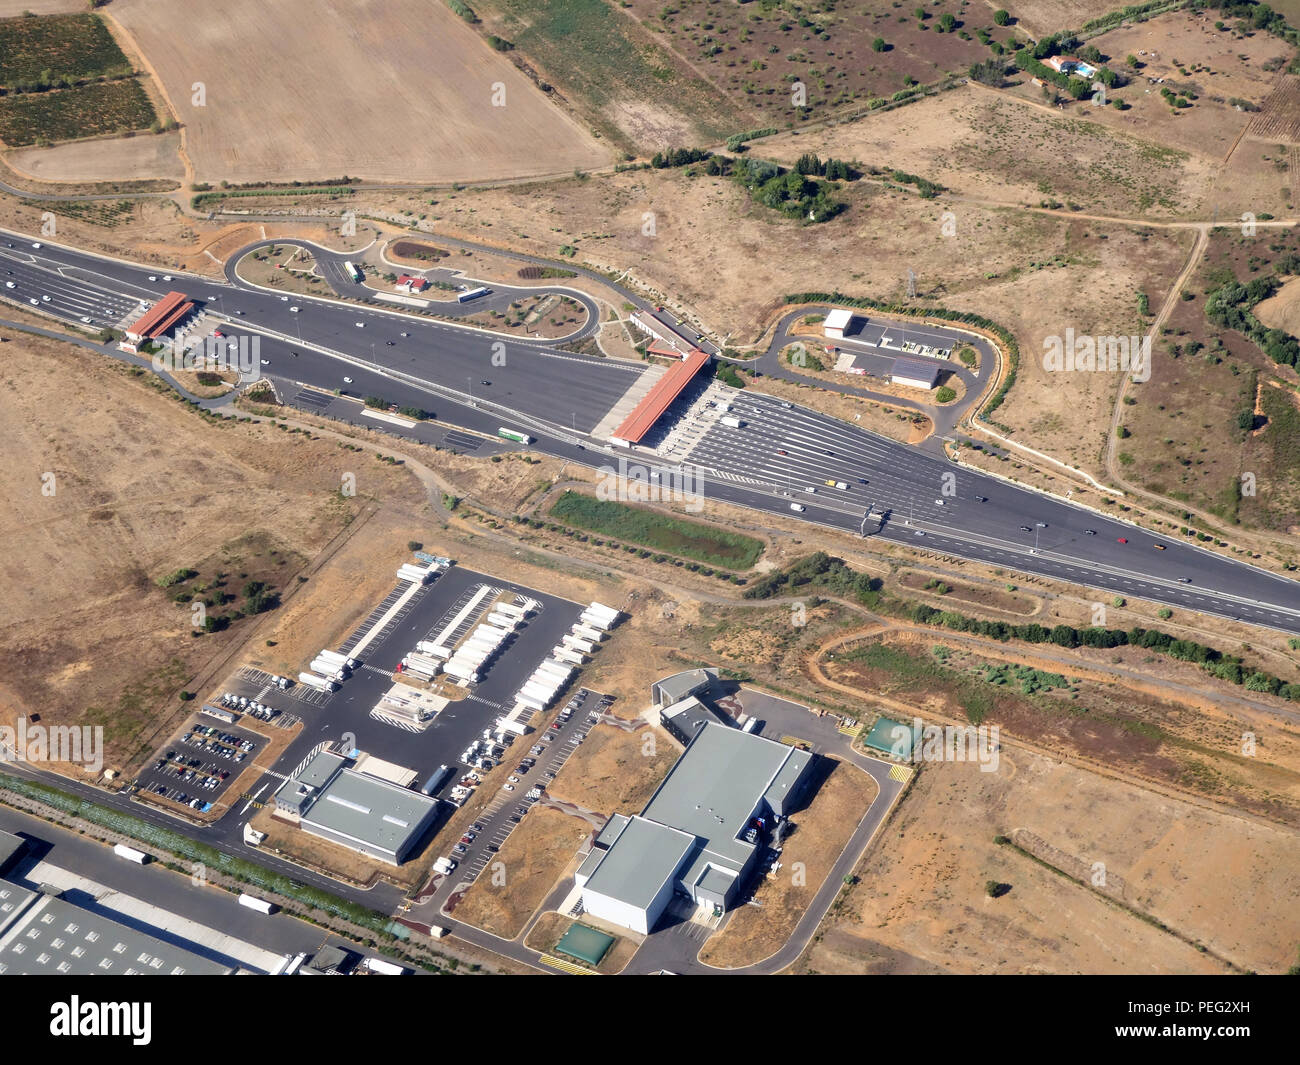 Aerial photograph of the Autoroute toll booths on the A75 La Méridienne, 34420 Béziers, France - Stock Image